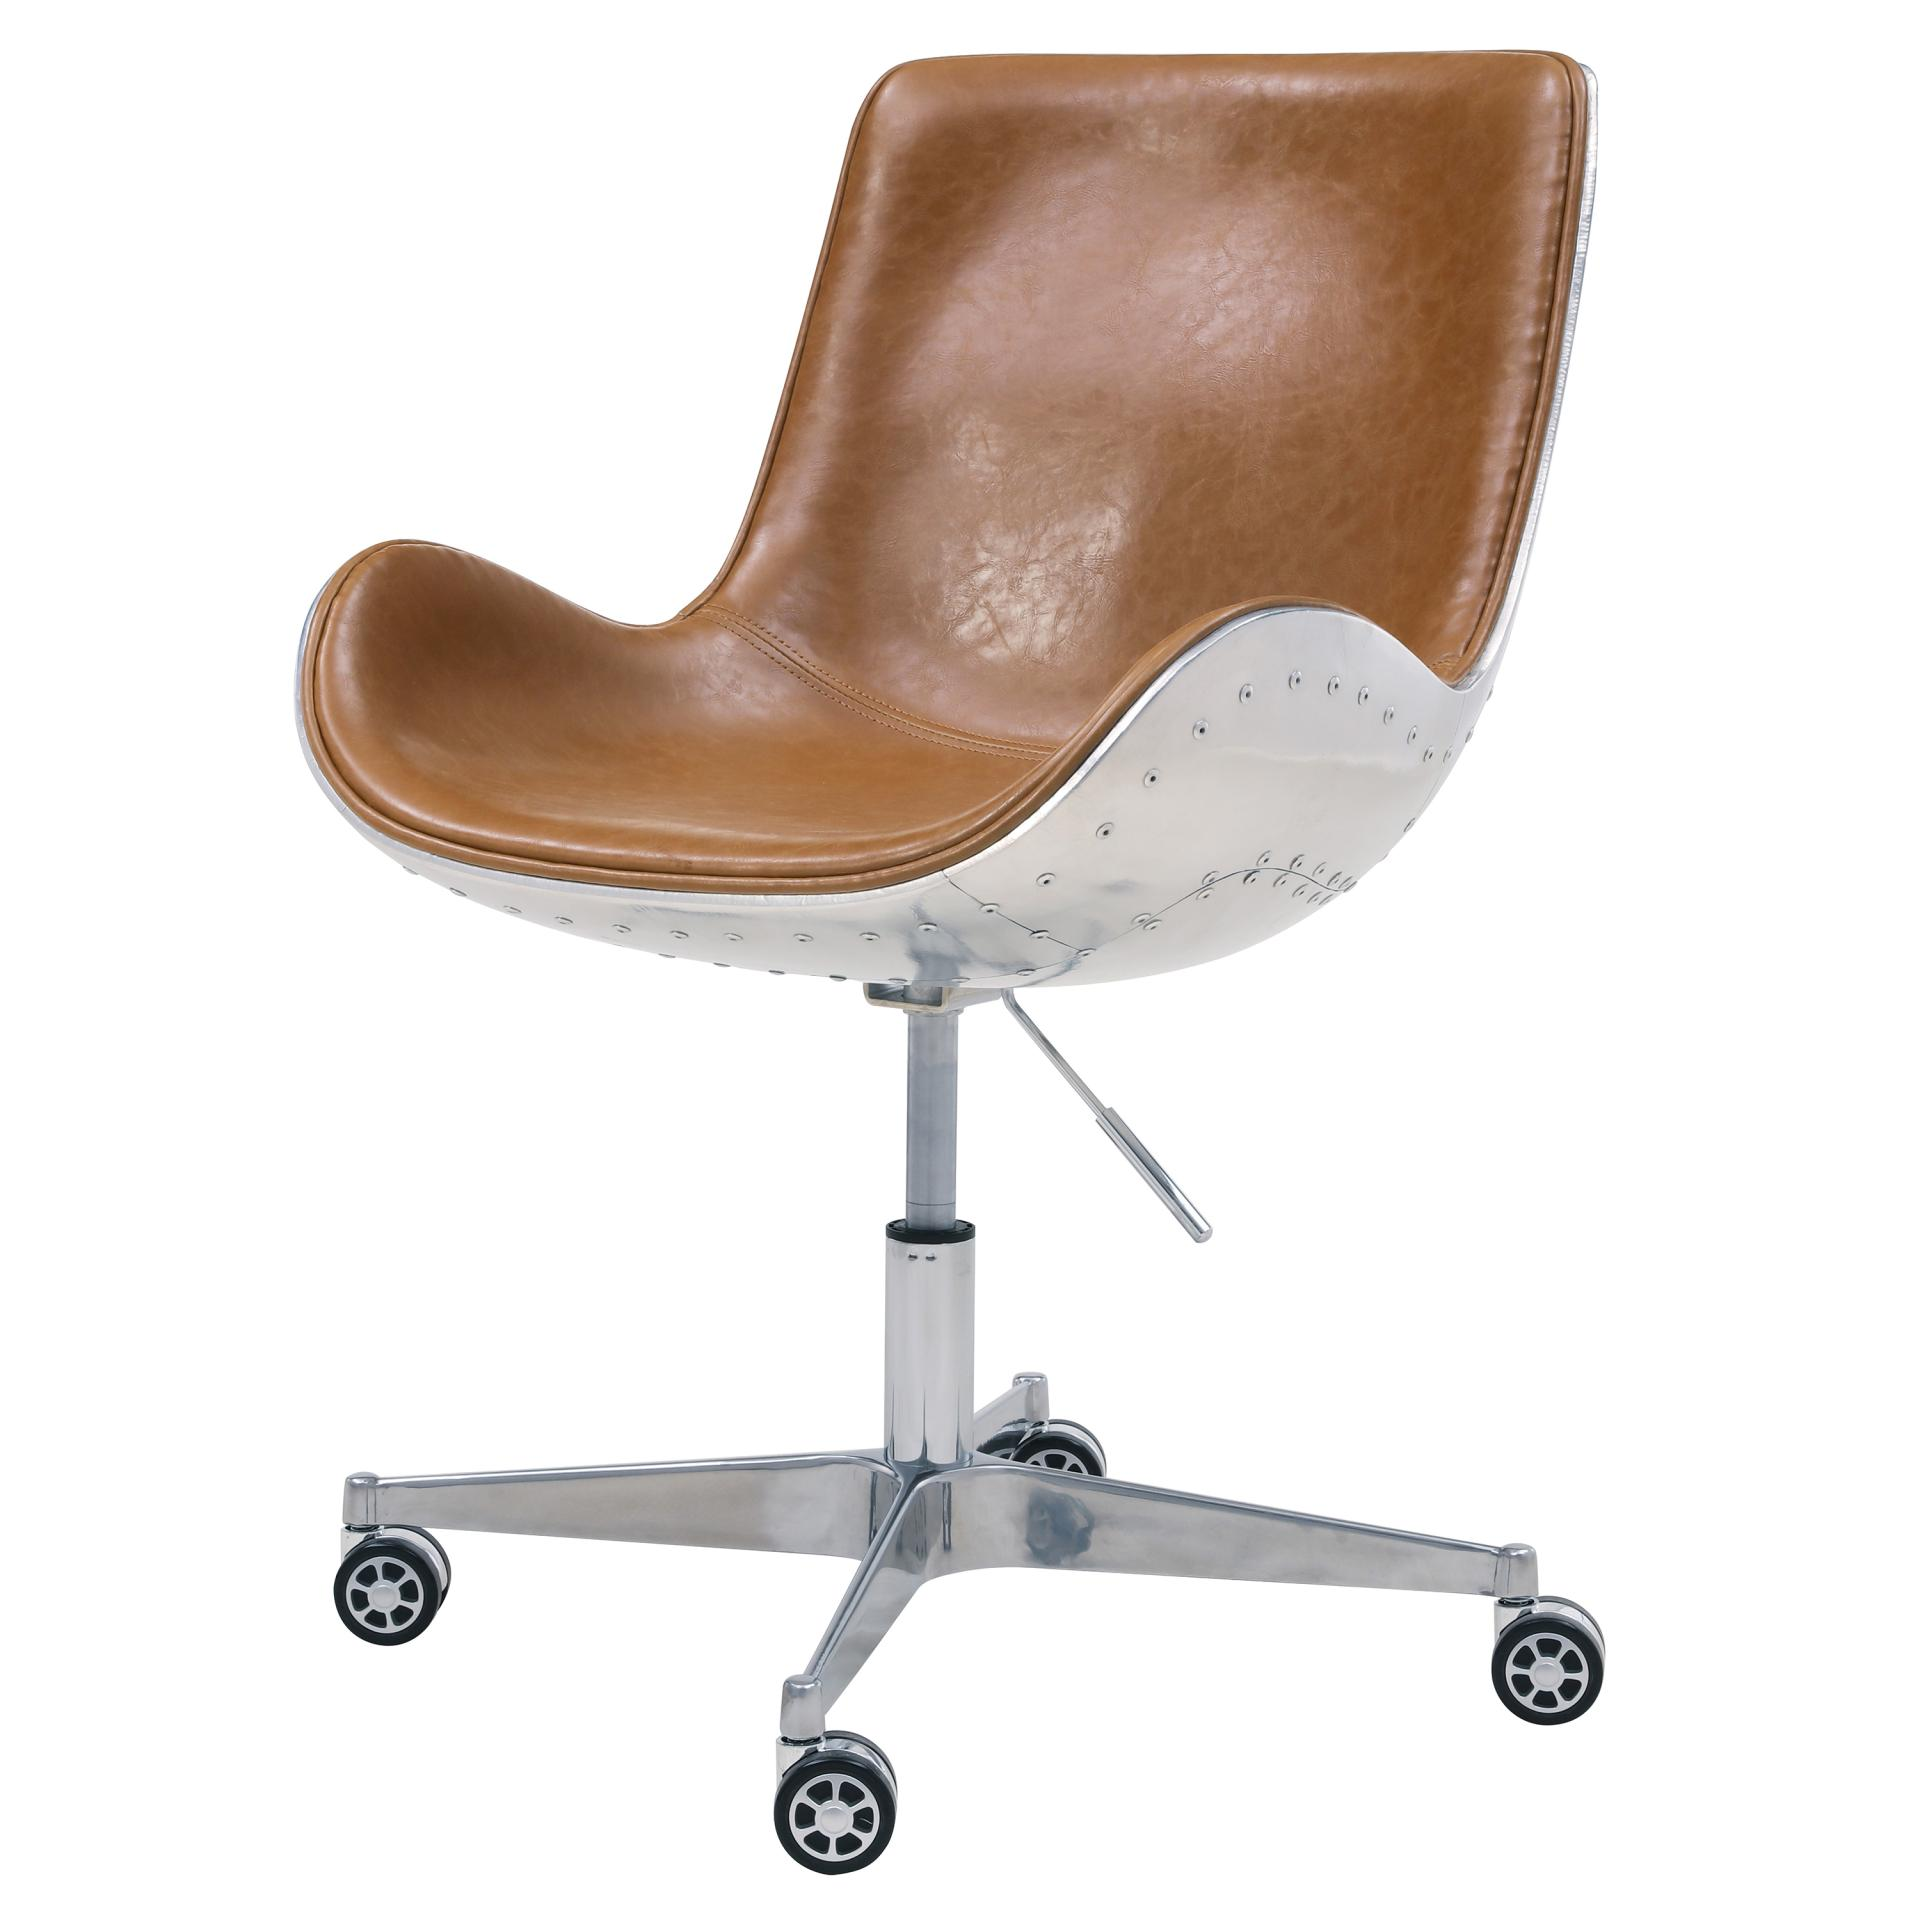 A Shapely Swivel Seat Inspired By Mid Century Design Our: 6300001-D1 - NPD Home Furniture